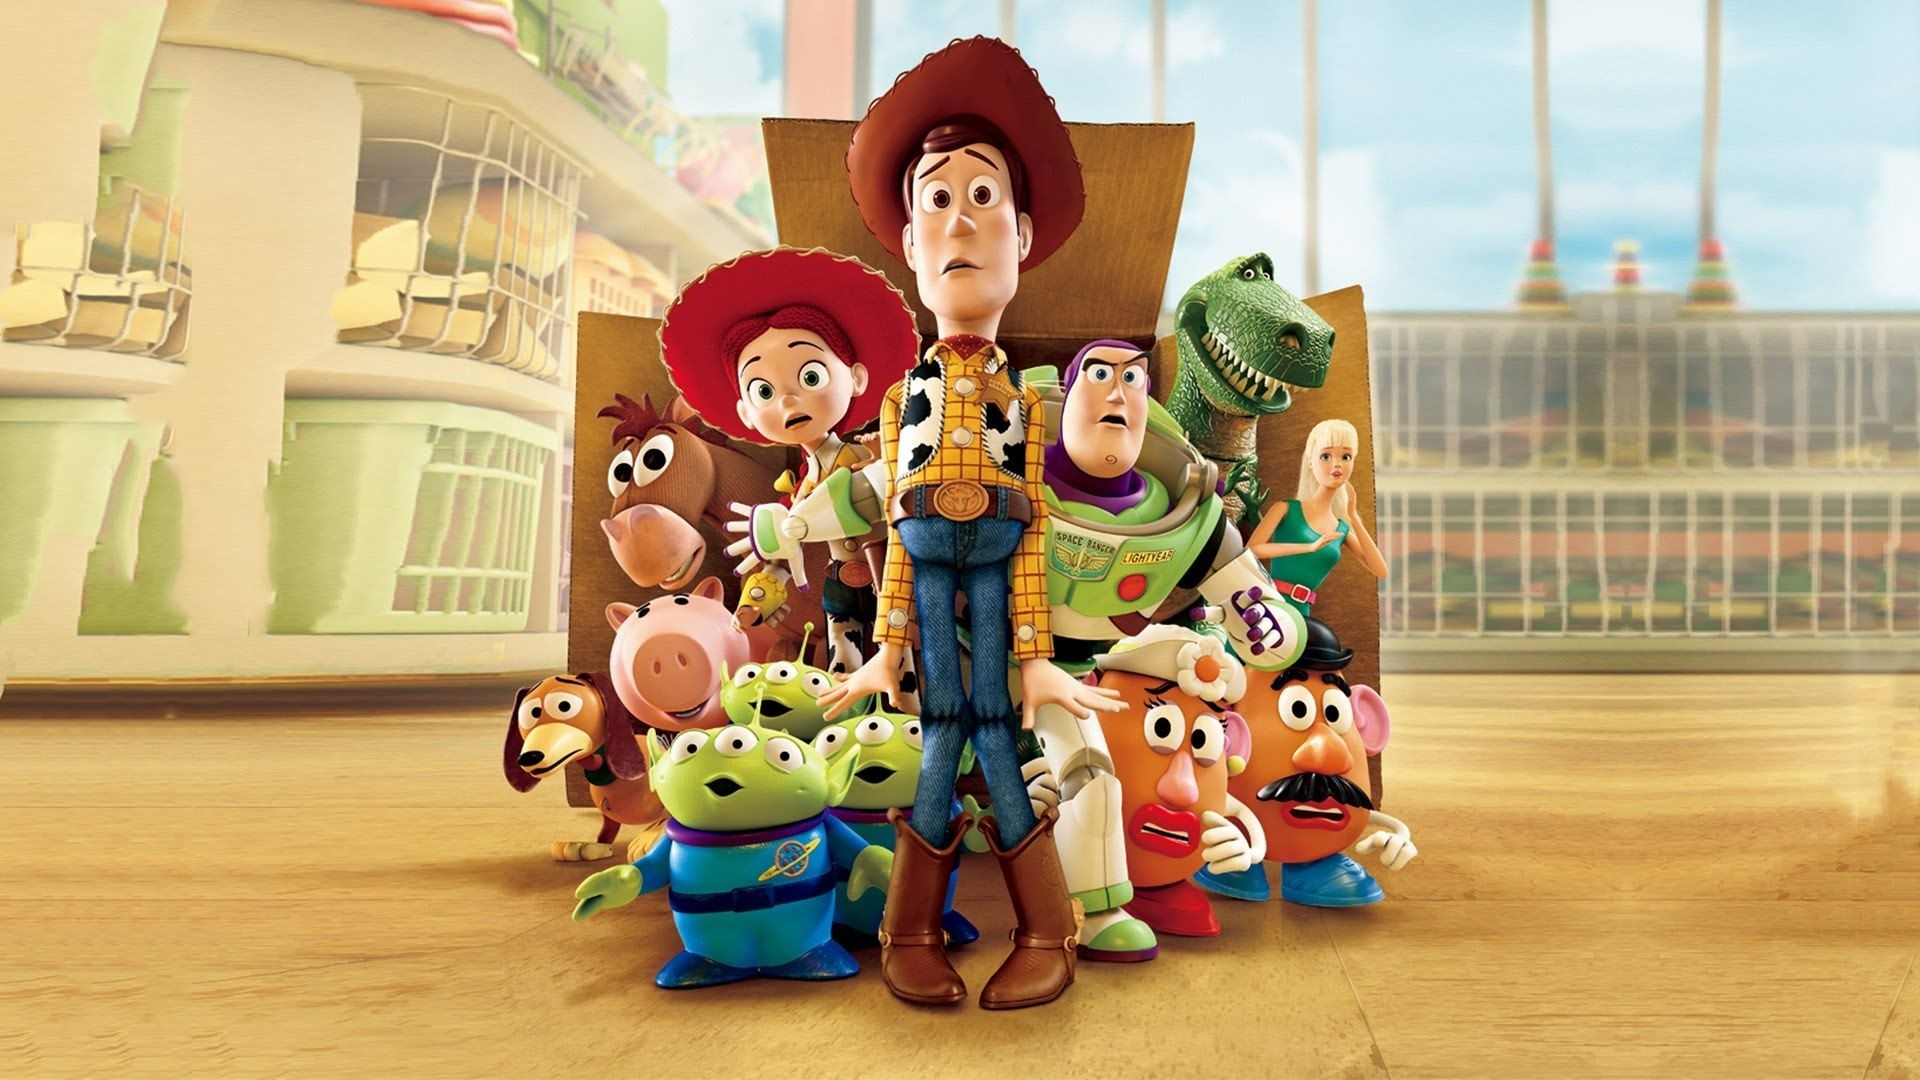 toy story wallpapers ·①